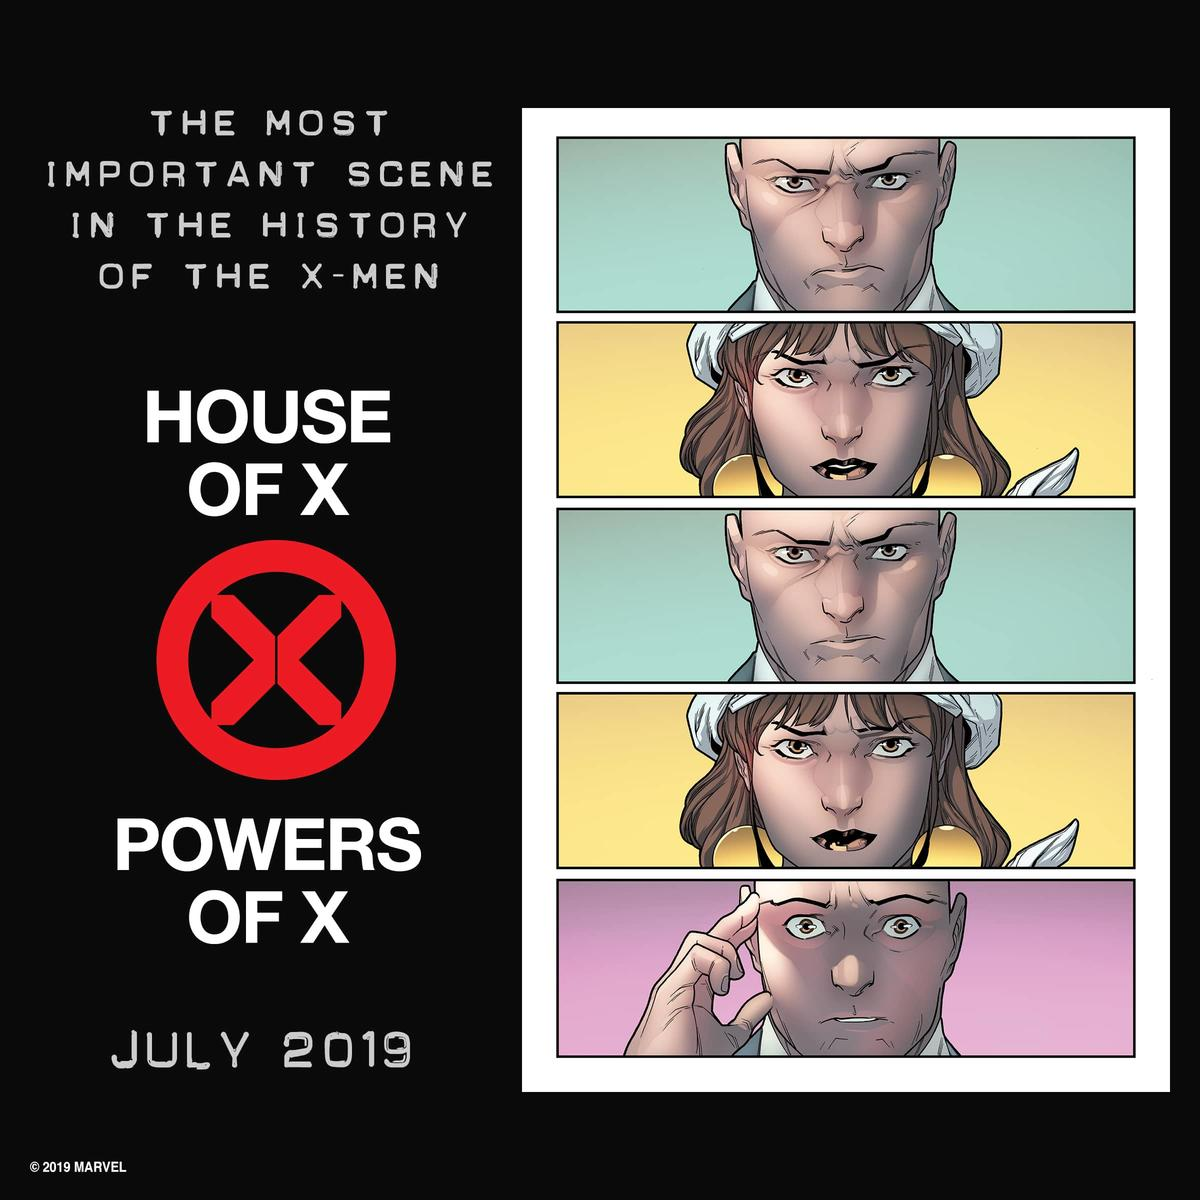 Powers of X